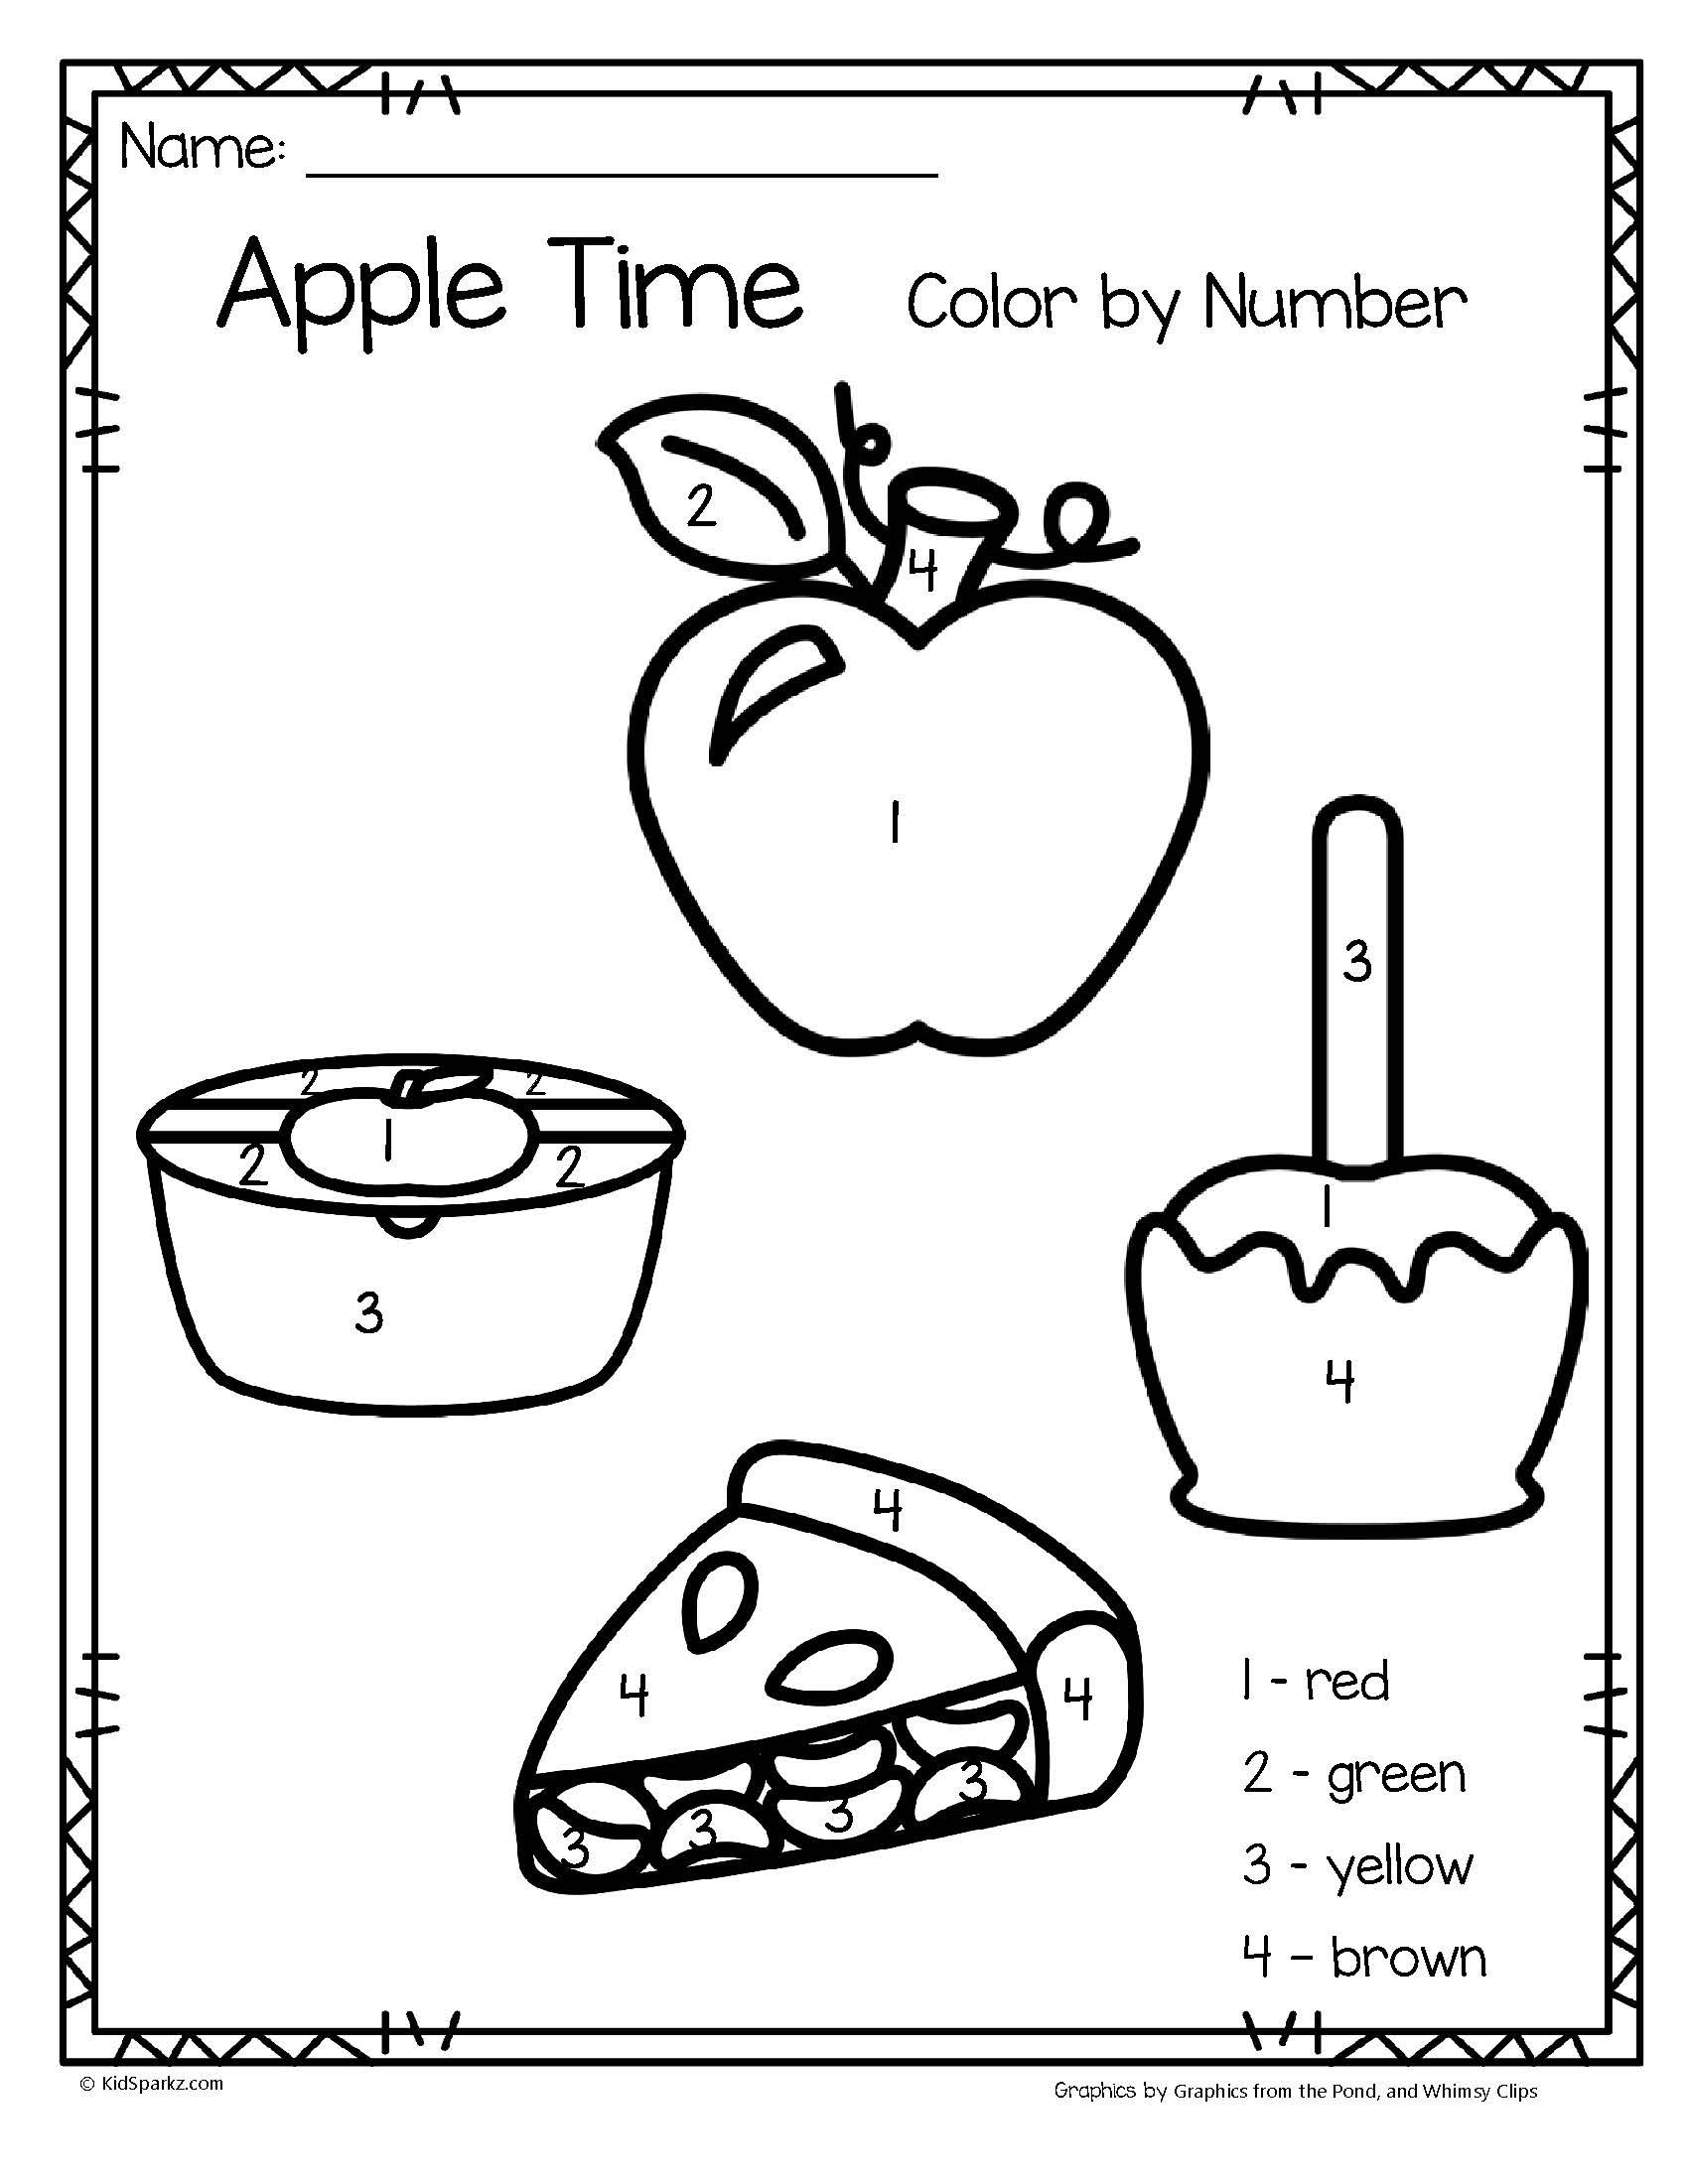 Apple Time Color By Number Printables